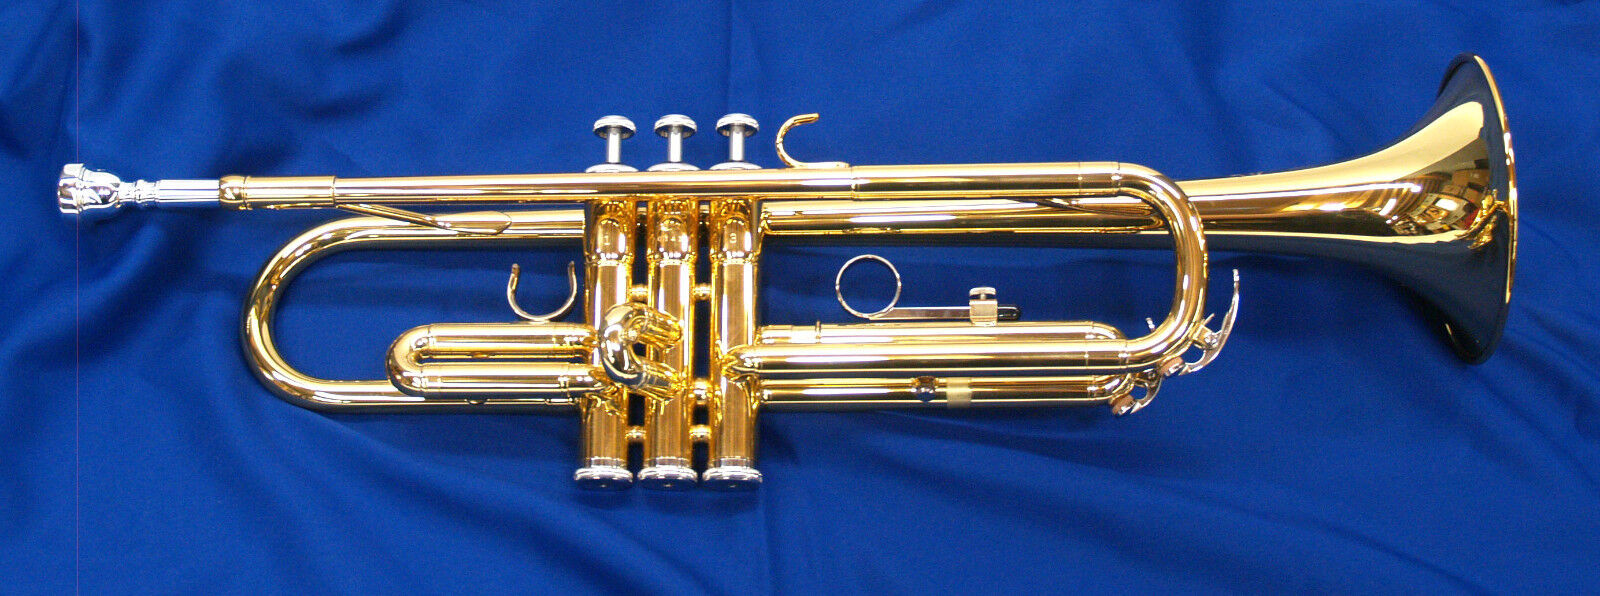 Yamaha Student Trumpet For Sale